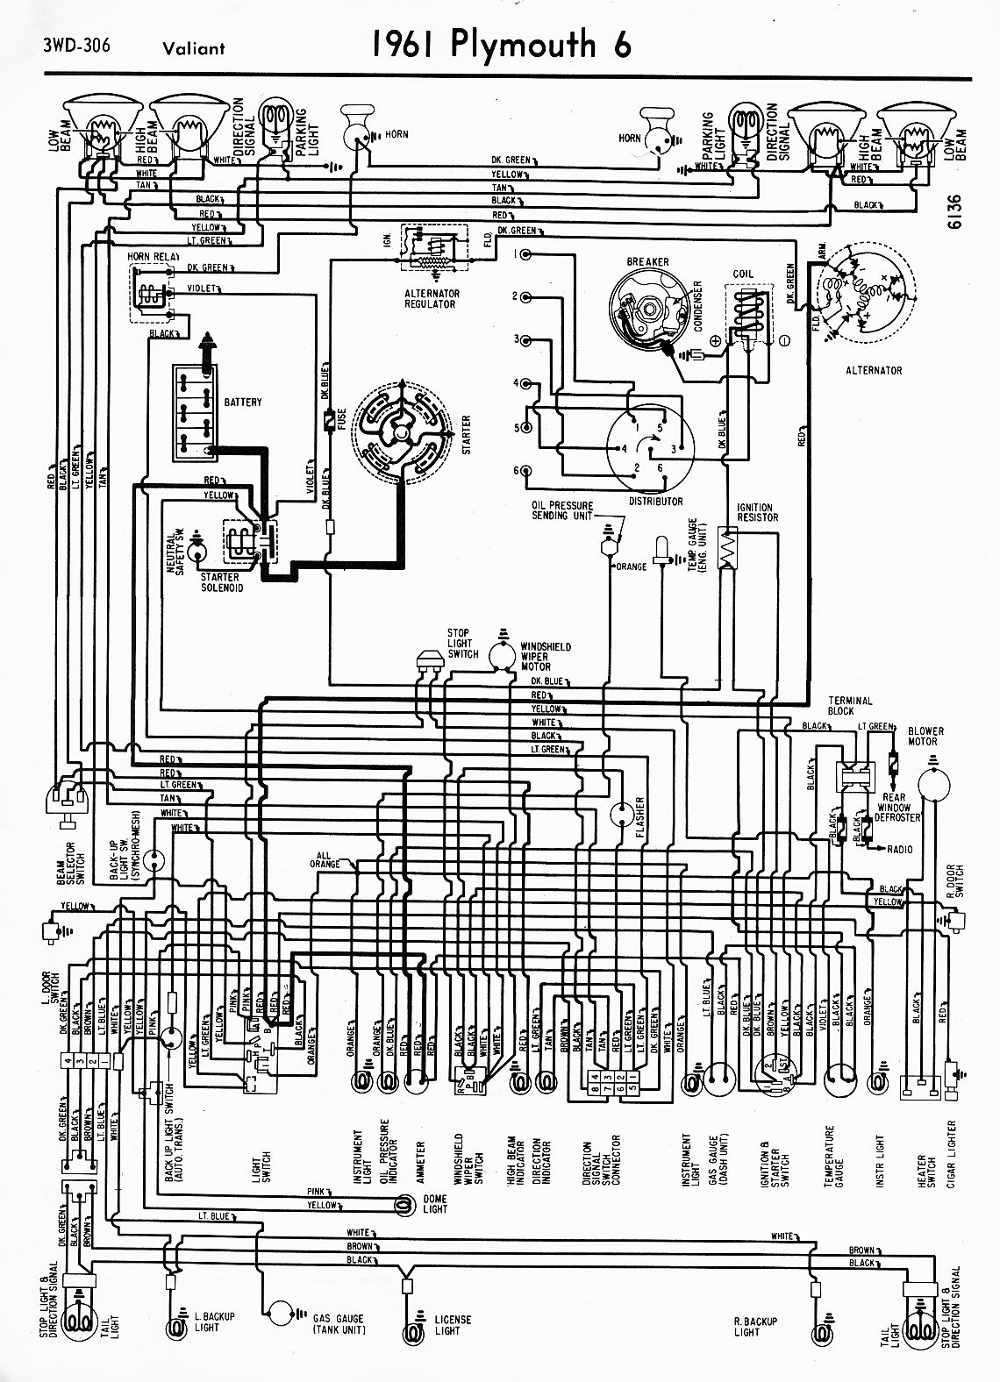 small resolution of 1965 plymouth barracuda wiring diagram schematic wiring diagram 1965 plymouth barracuda wiring diagram schematic